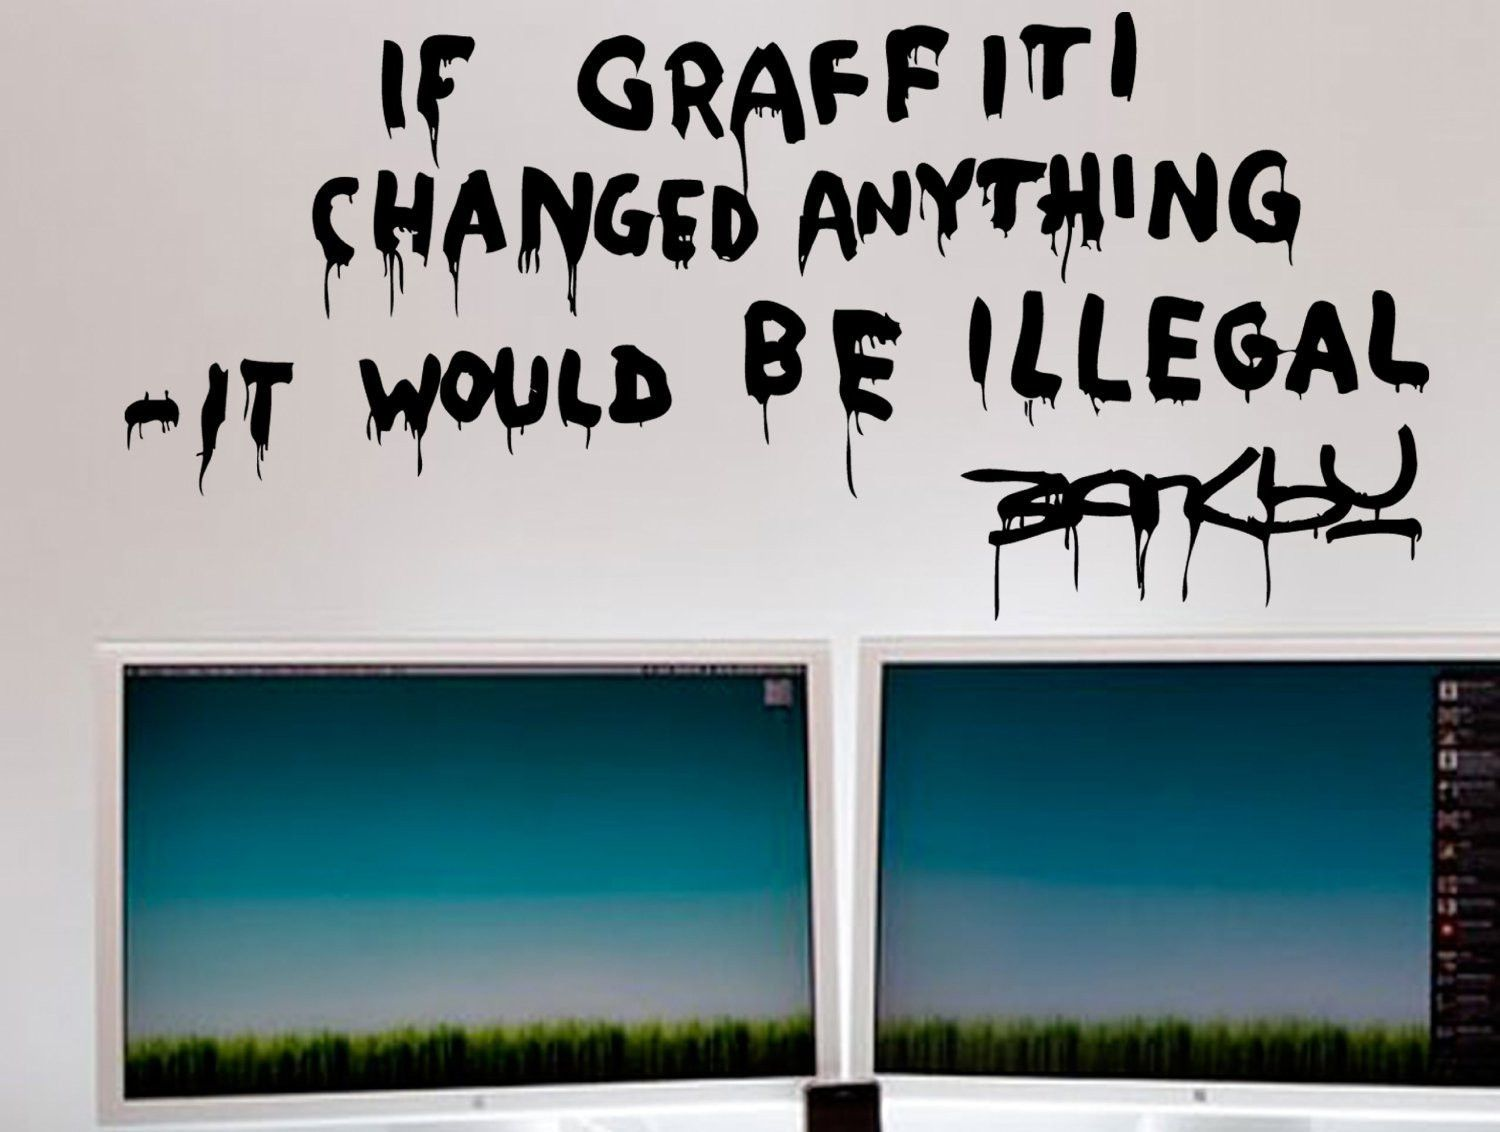 banksy wall decal inspirational quote banksy graffiti and banksy wall decal inspirational quote